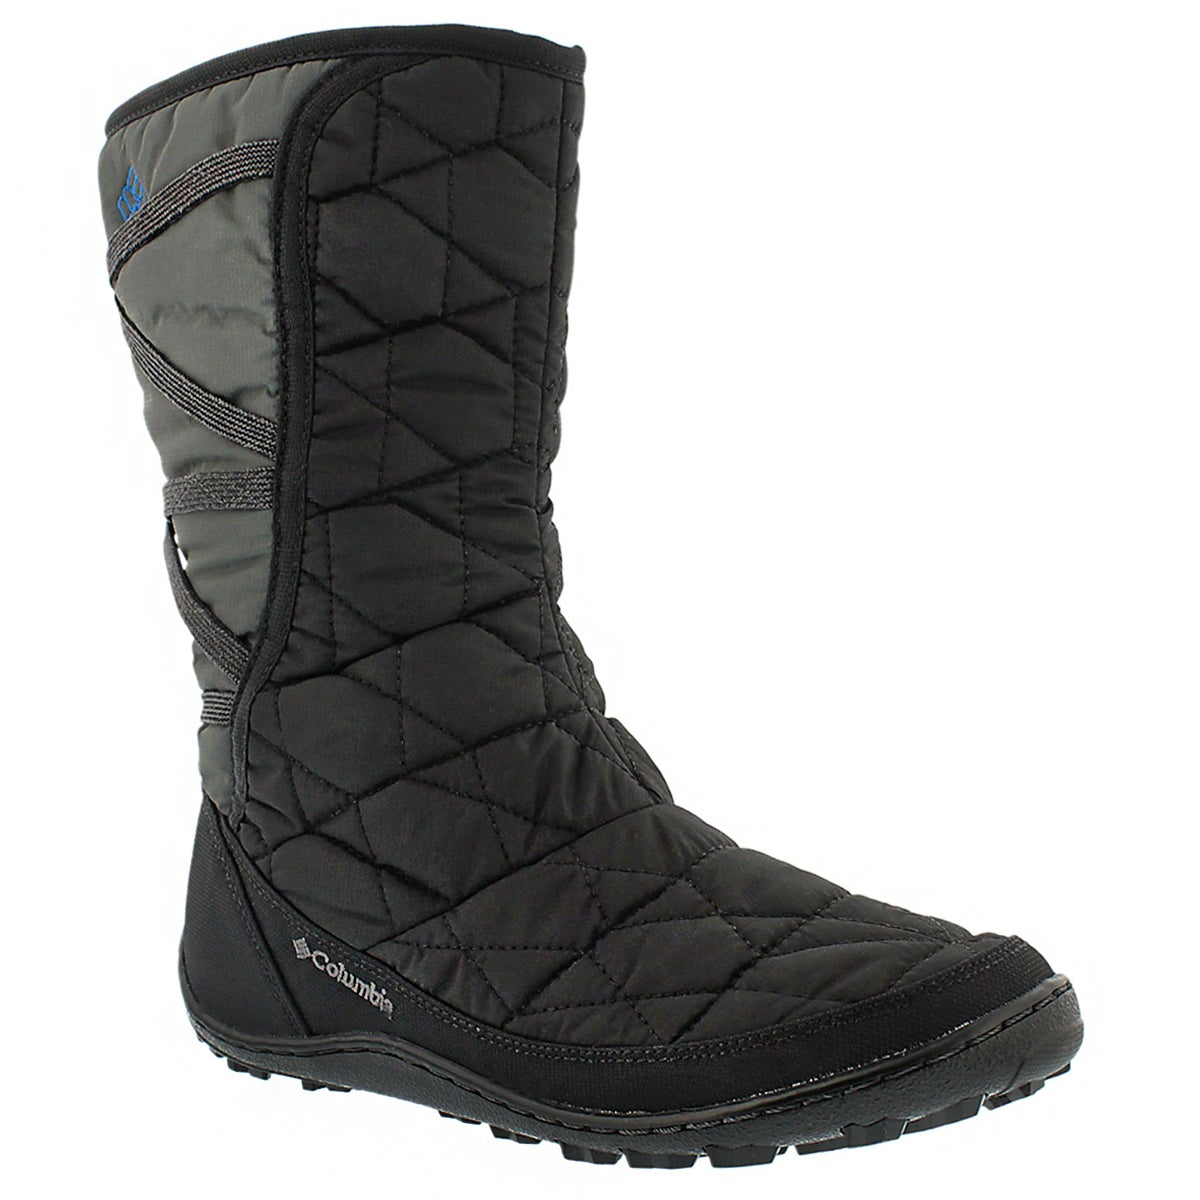 Lds Minx Mid Slip blk pull on wntr boot